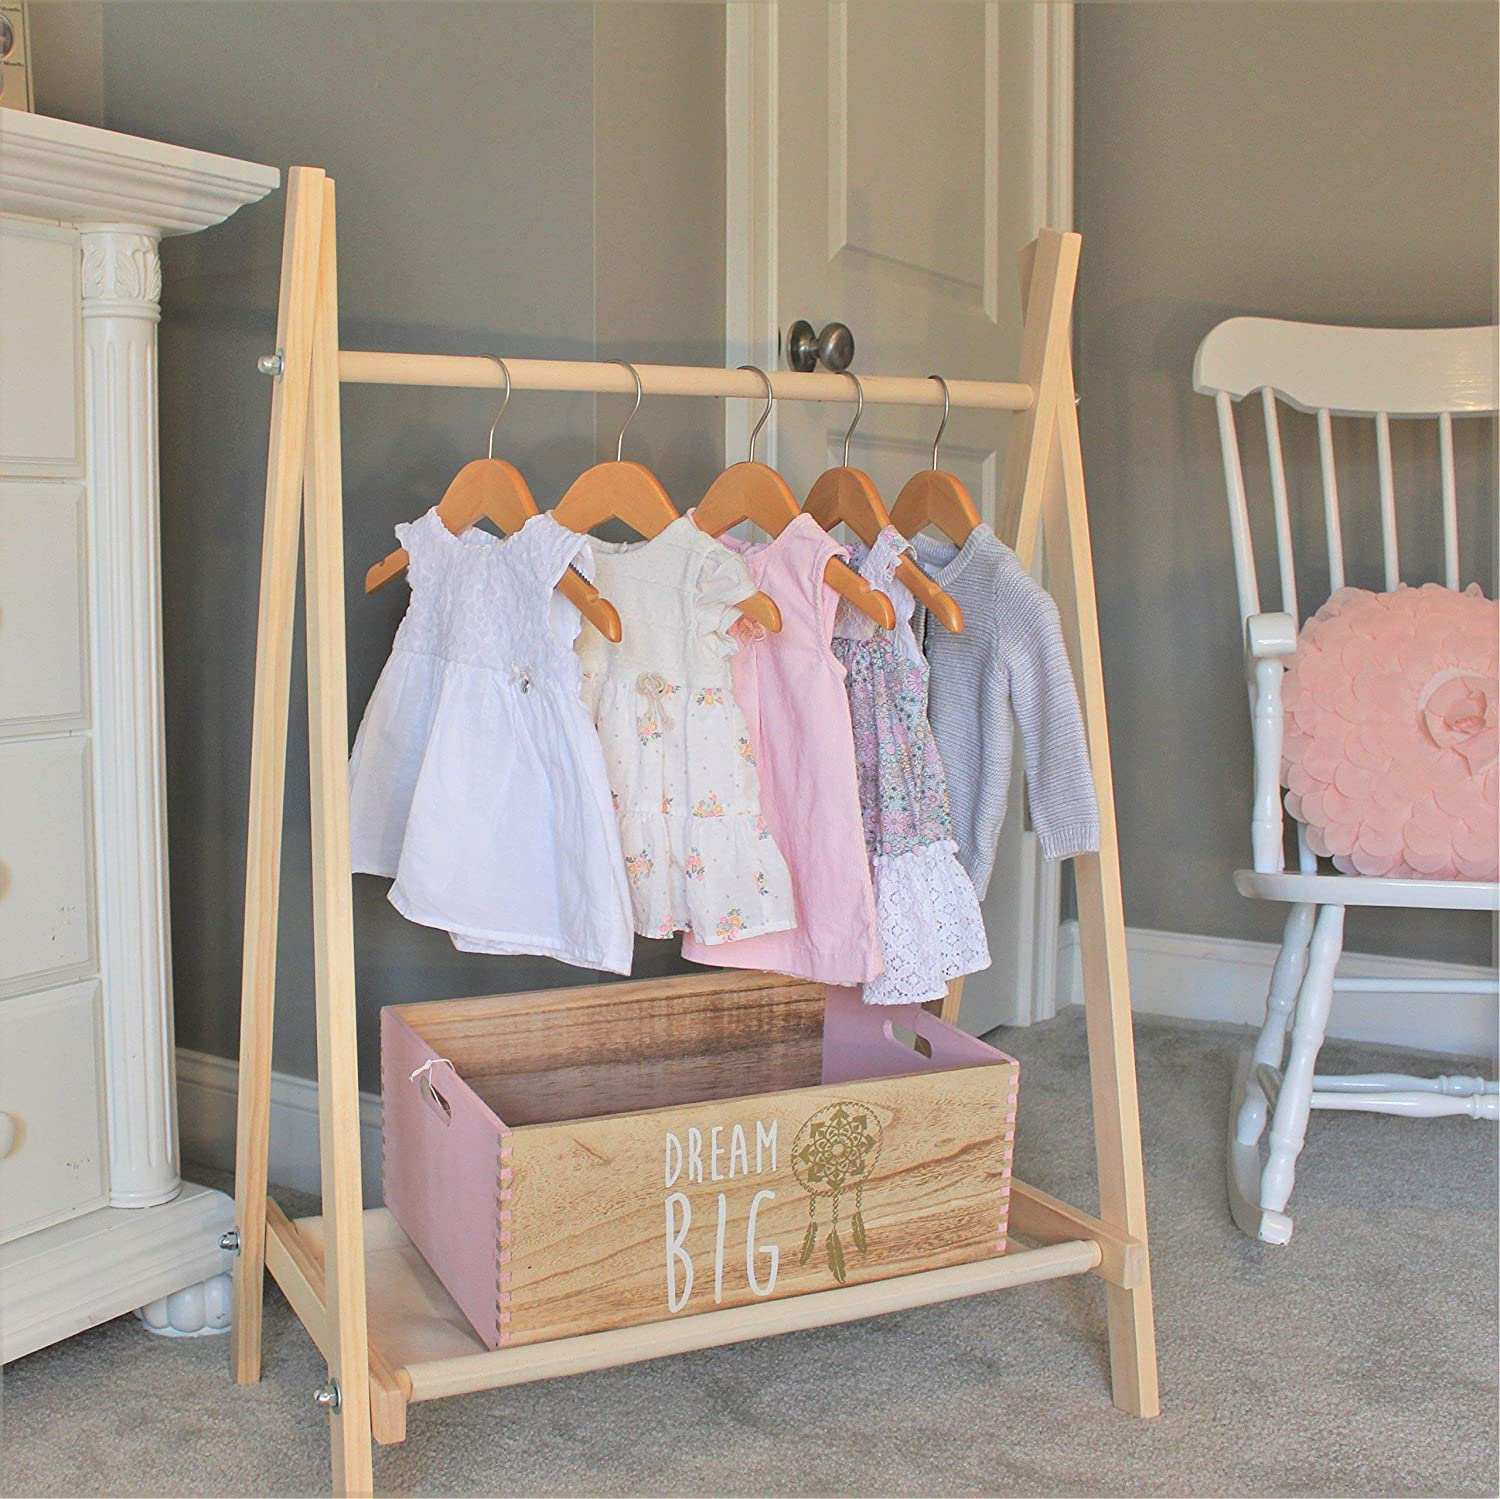 Clothing Rack Nursery Decor Dress Up Station Kids Clothing Storage Folds Up 40x26 In Tall Wooden Clothes Rack With Canvas Storage Shelf